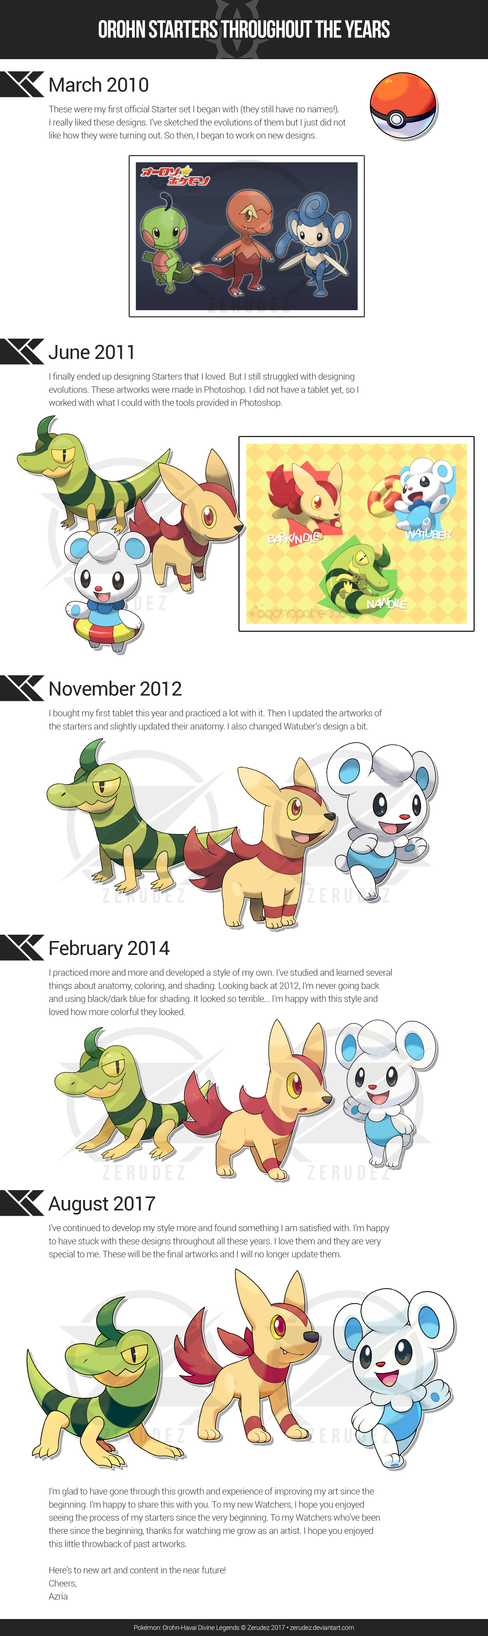 Orohn Starters Throughout The Years by zerudez